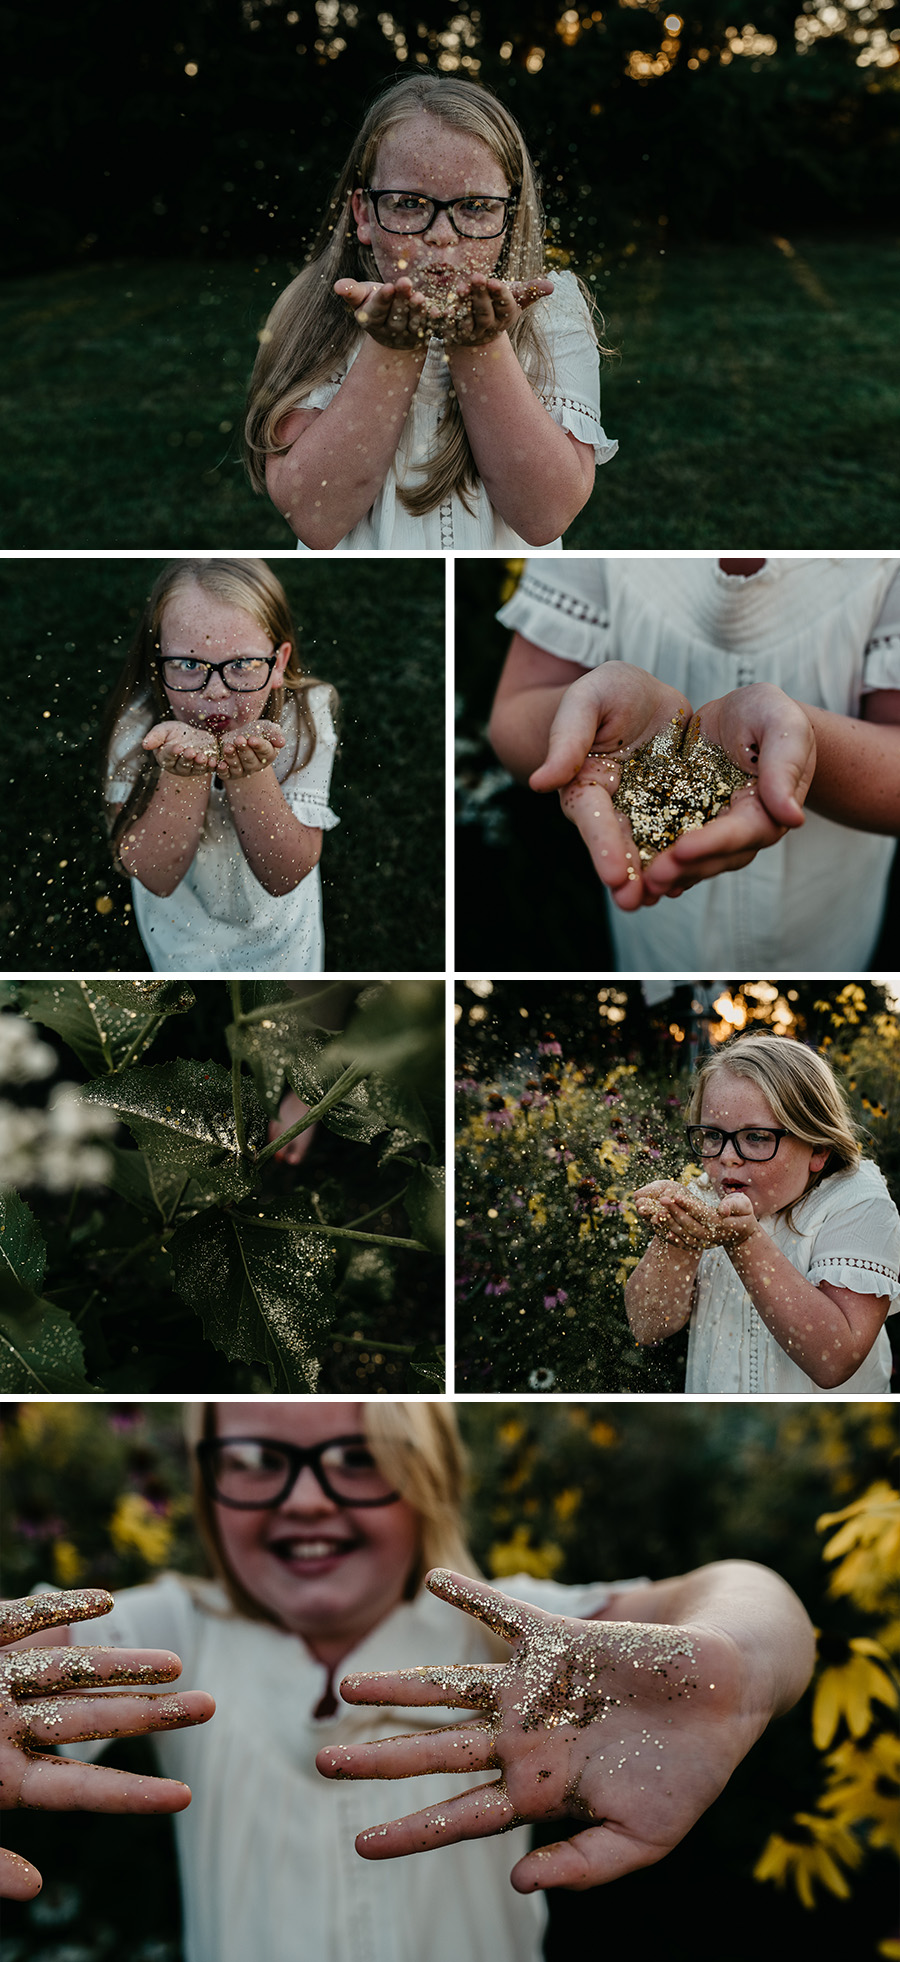 Garden Glitter Session [Terry Farms Photography]